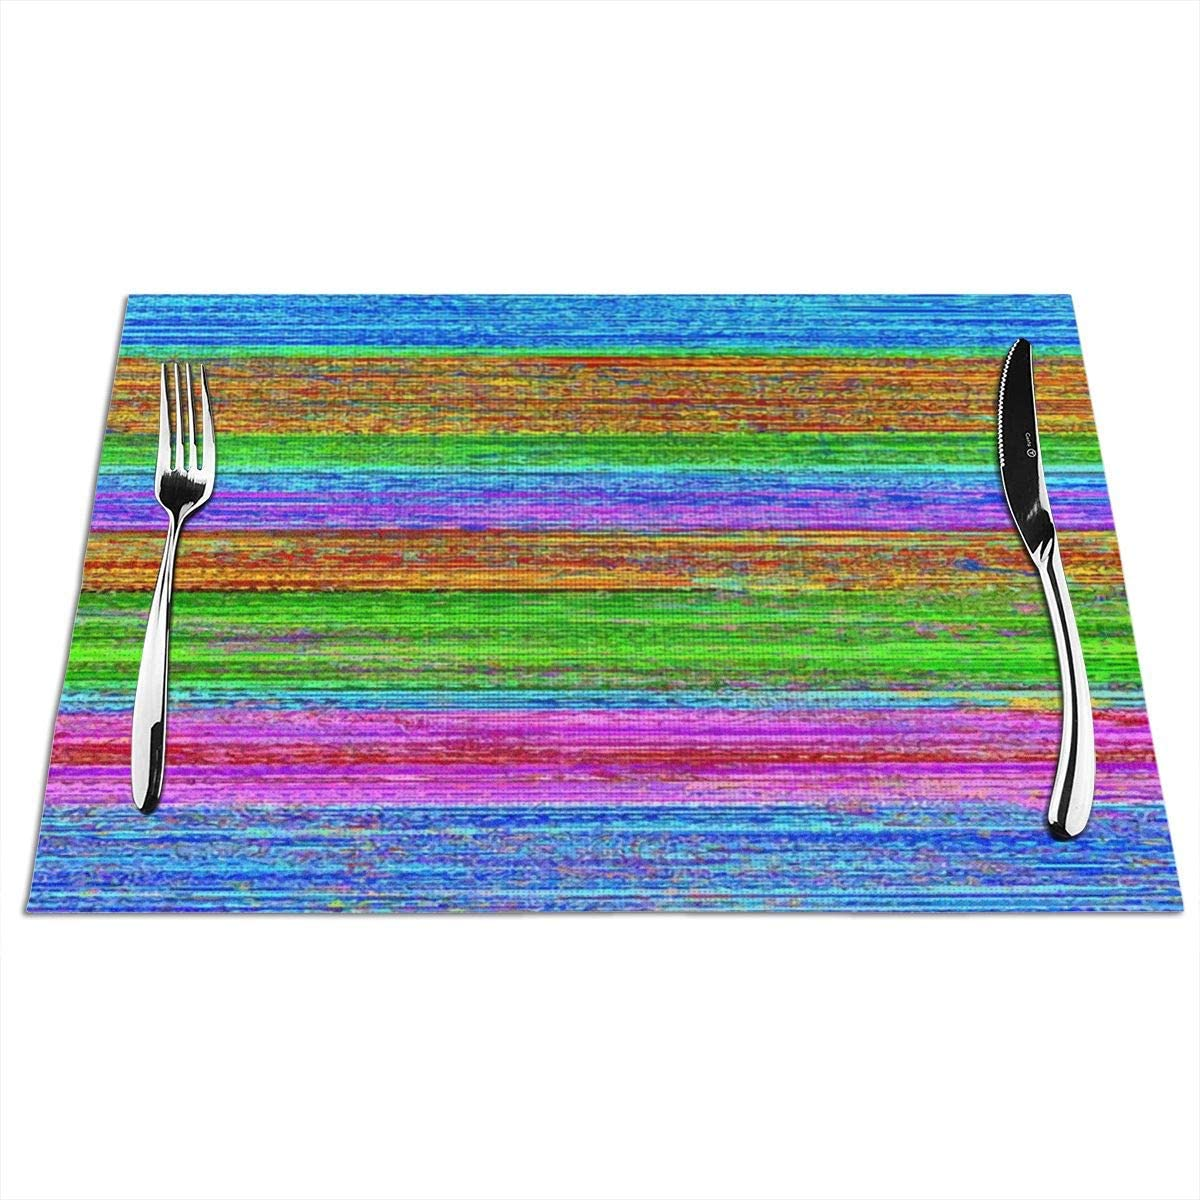 DianeDawson Placemats,Adult Zebra and Zebra Cub,Heat-Resistant Stain Resistant Anti-Skid Washable PVC Table Mats Woven Vinyl,Set of 1